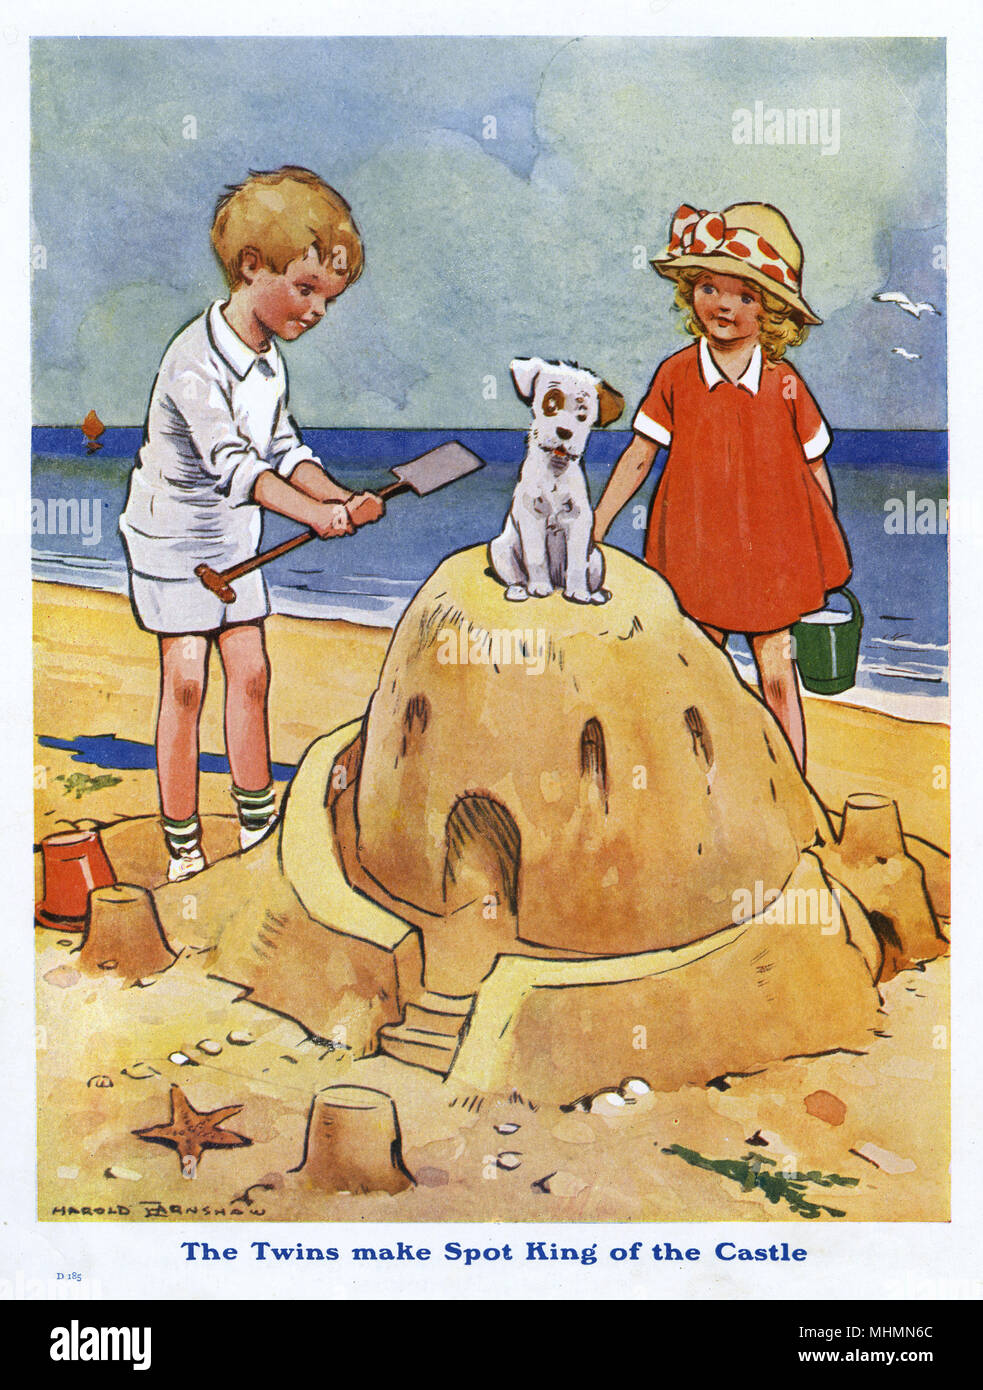 Two children build an impressive sandcastle atop which their little dog decides to sit.       Date: c.1920 - Stock Image